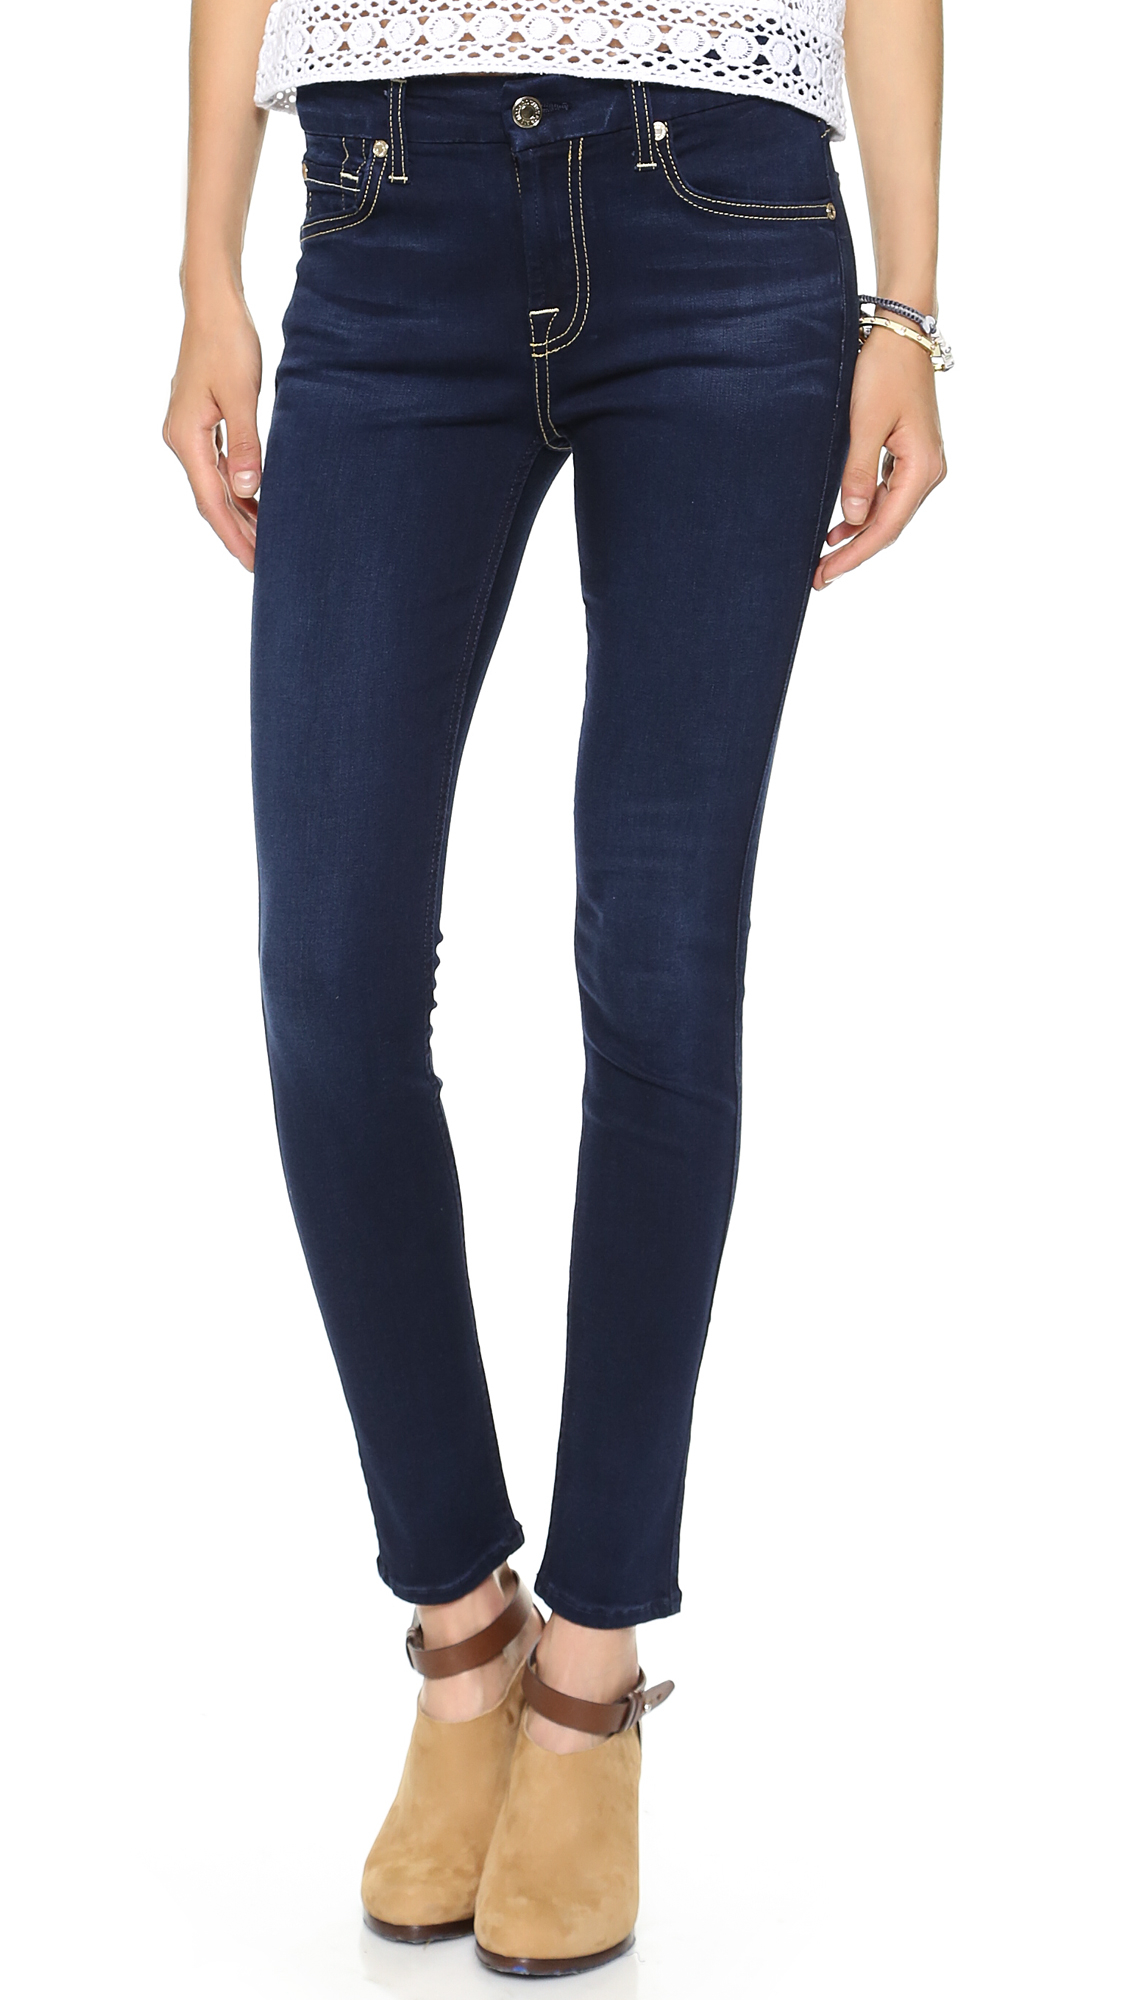 7 for all mankind 7 For All Mankind - Slim Illusion Luxe Night ...